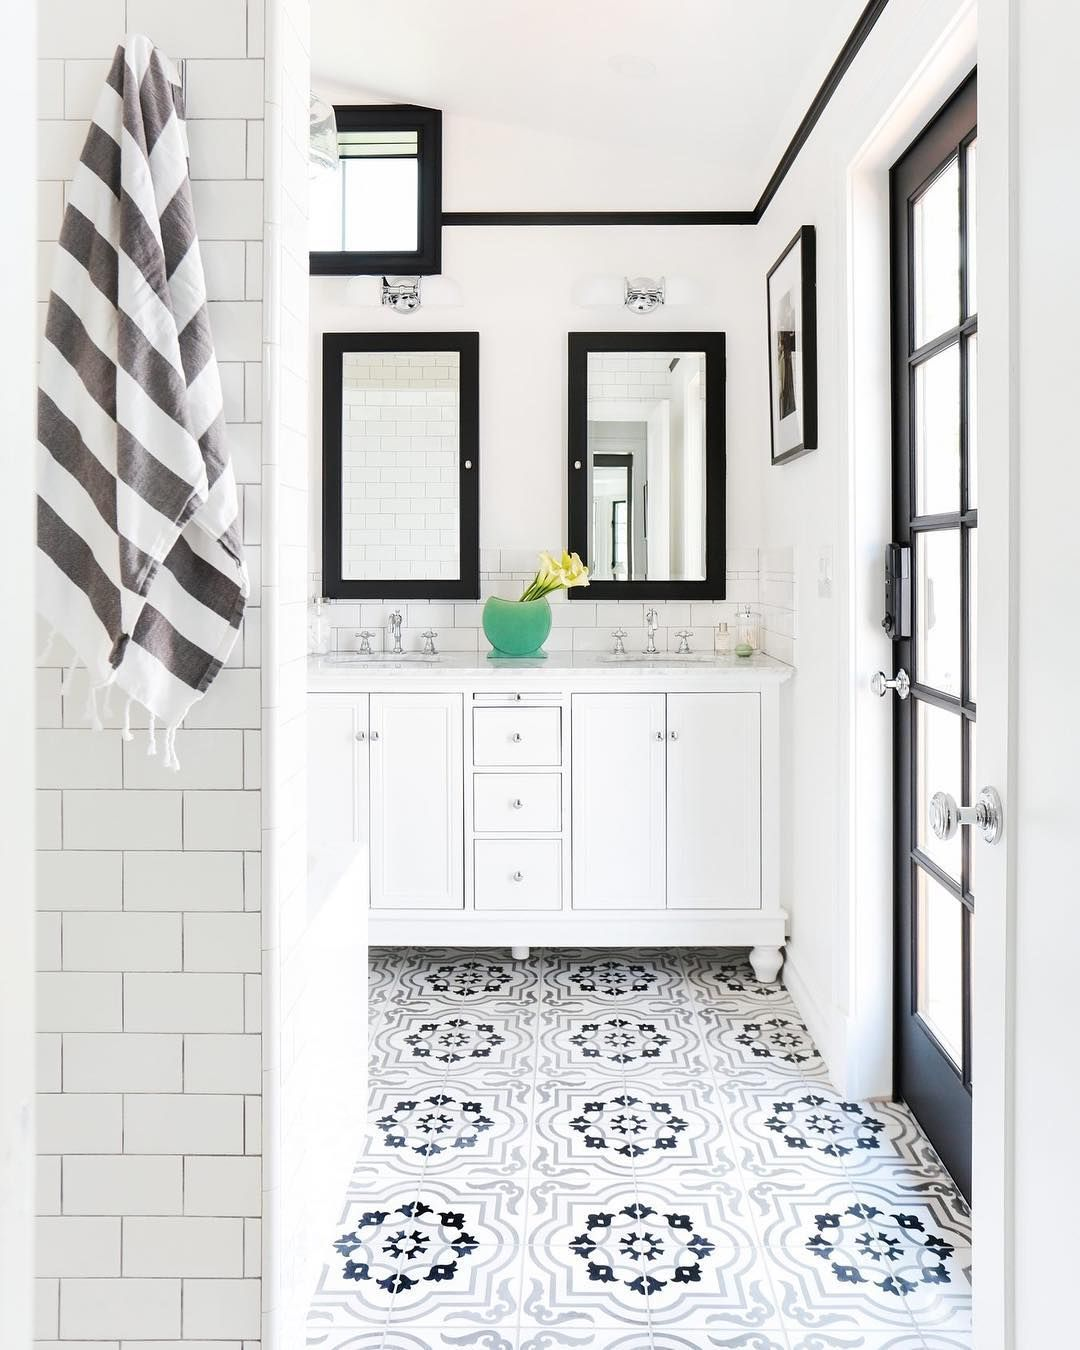 Homepolish On Instagram What S Your Tile Style Just When We Thought We D Pinpointed Ours This Patt Beautiful Bathrooms Bathroom Design Bathroom Inspiration